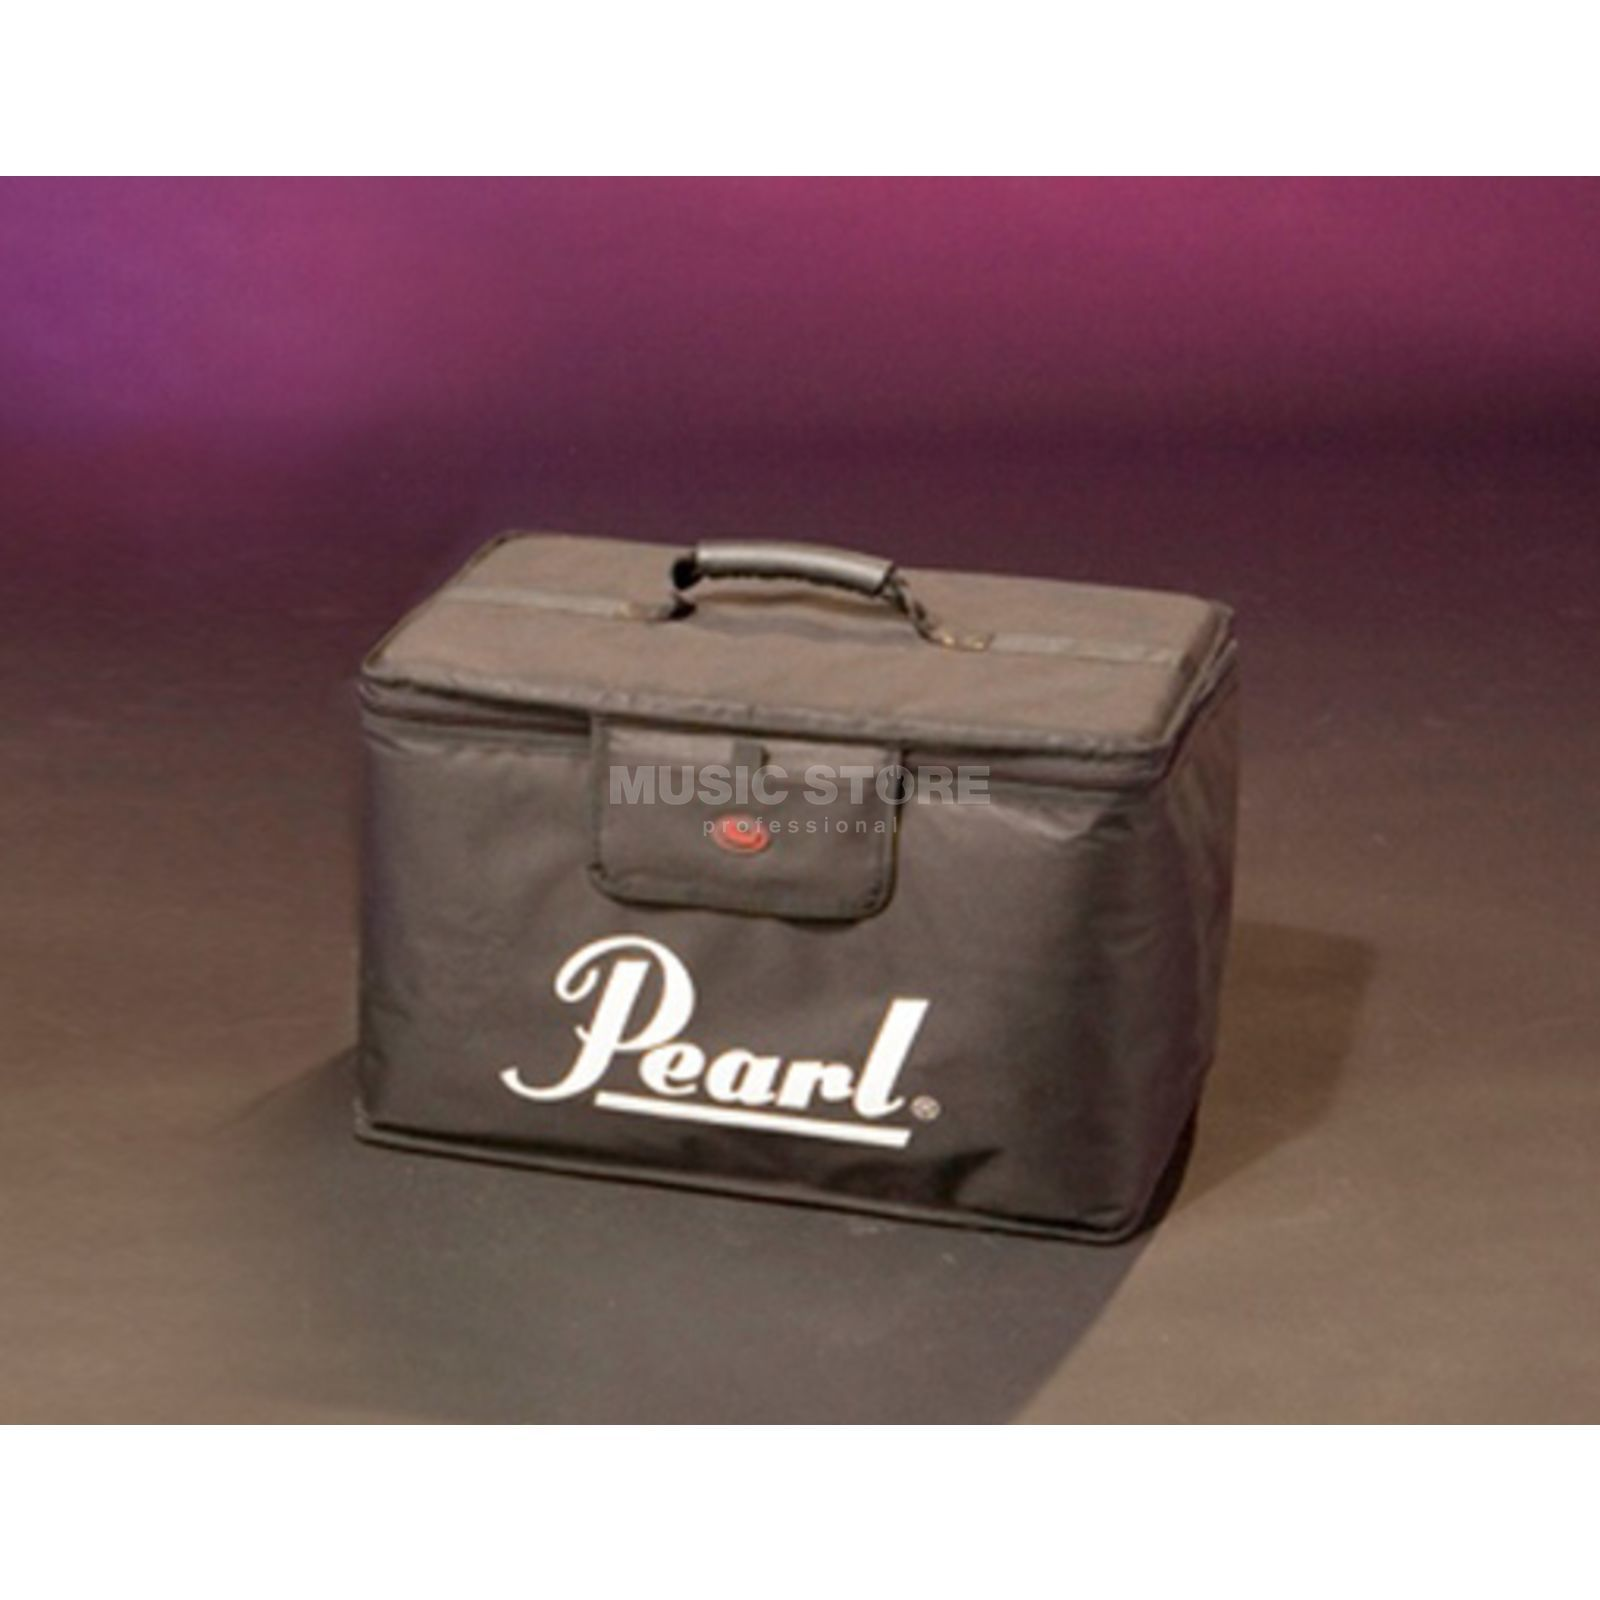 Pearl Cajon Bag PSC-1213CJ, f. Boom Box Product Image